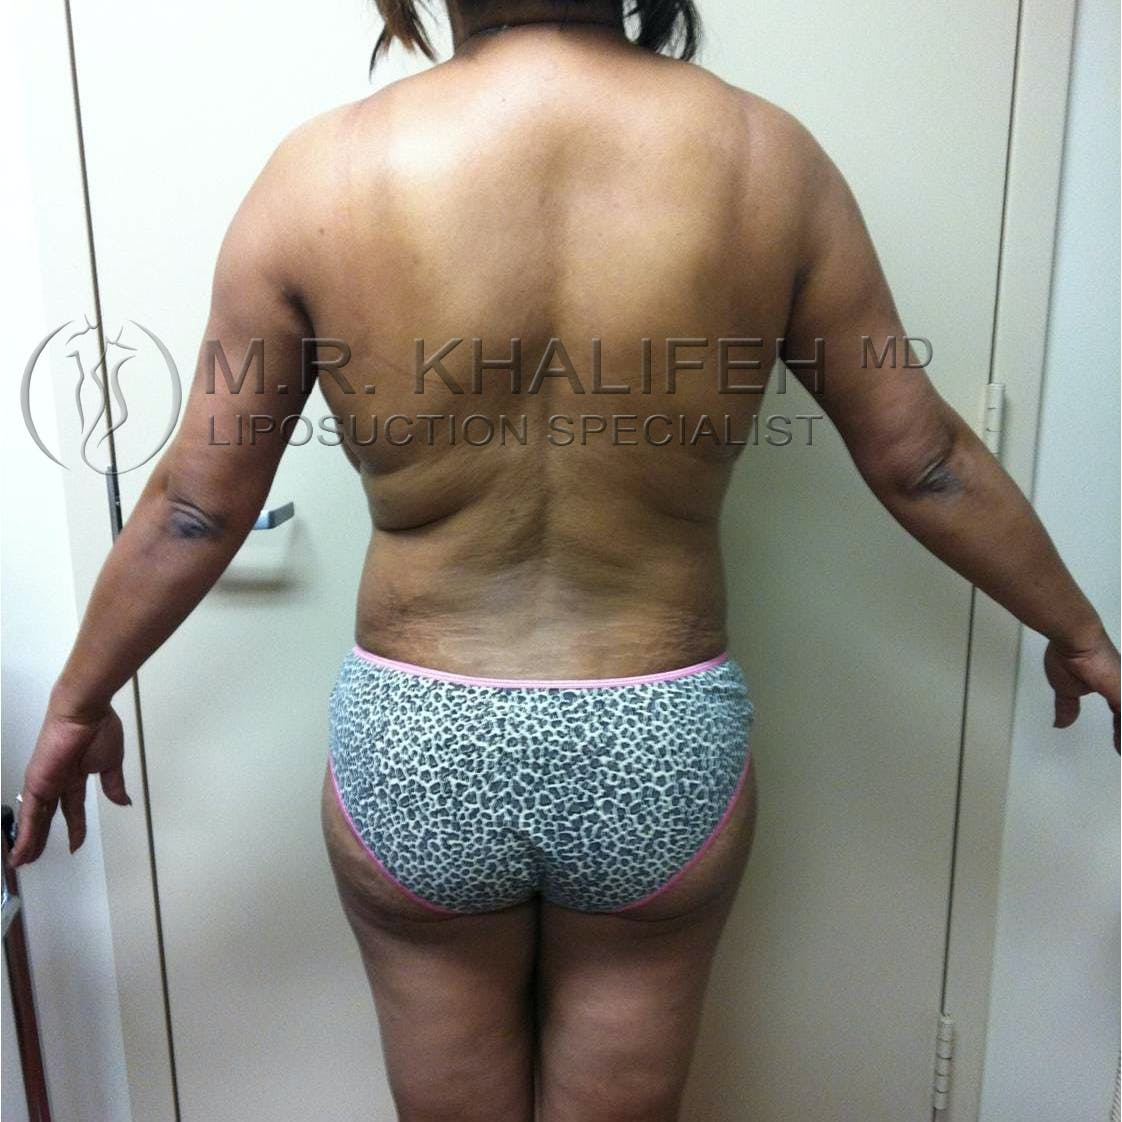 Flank-Lower Back Liposuction Gallery - Patient 3719930 - Image 2